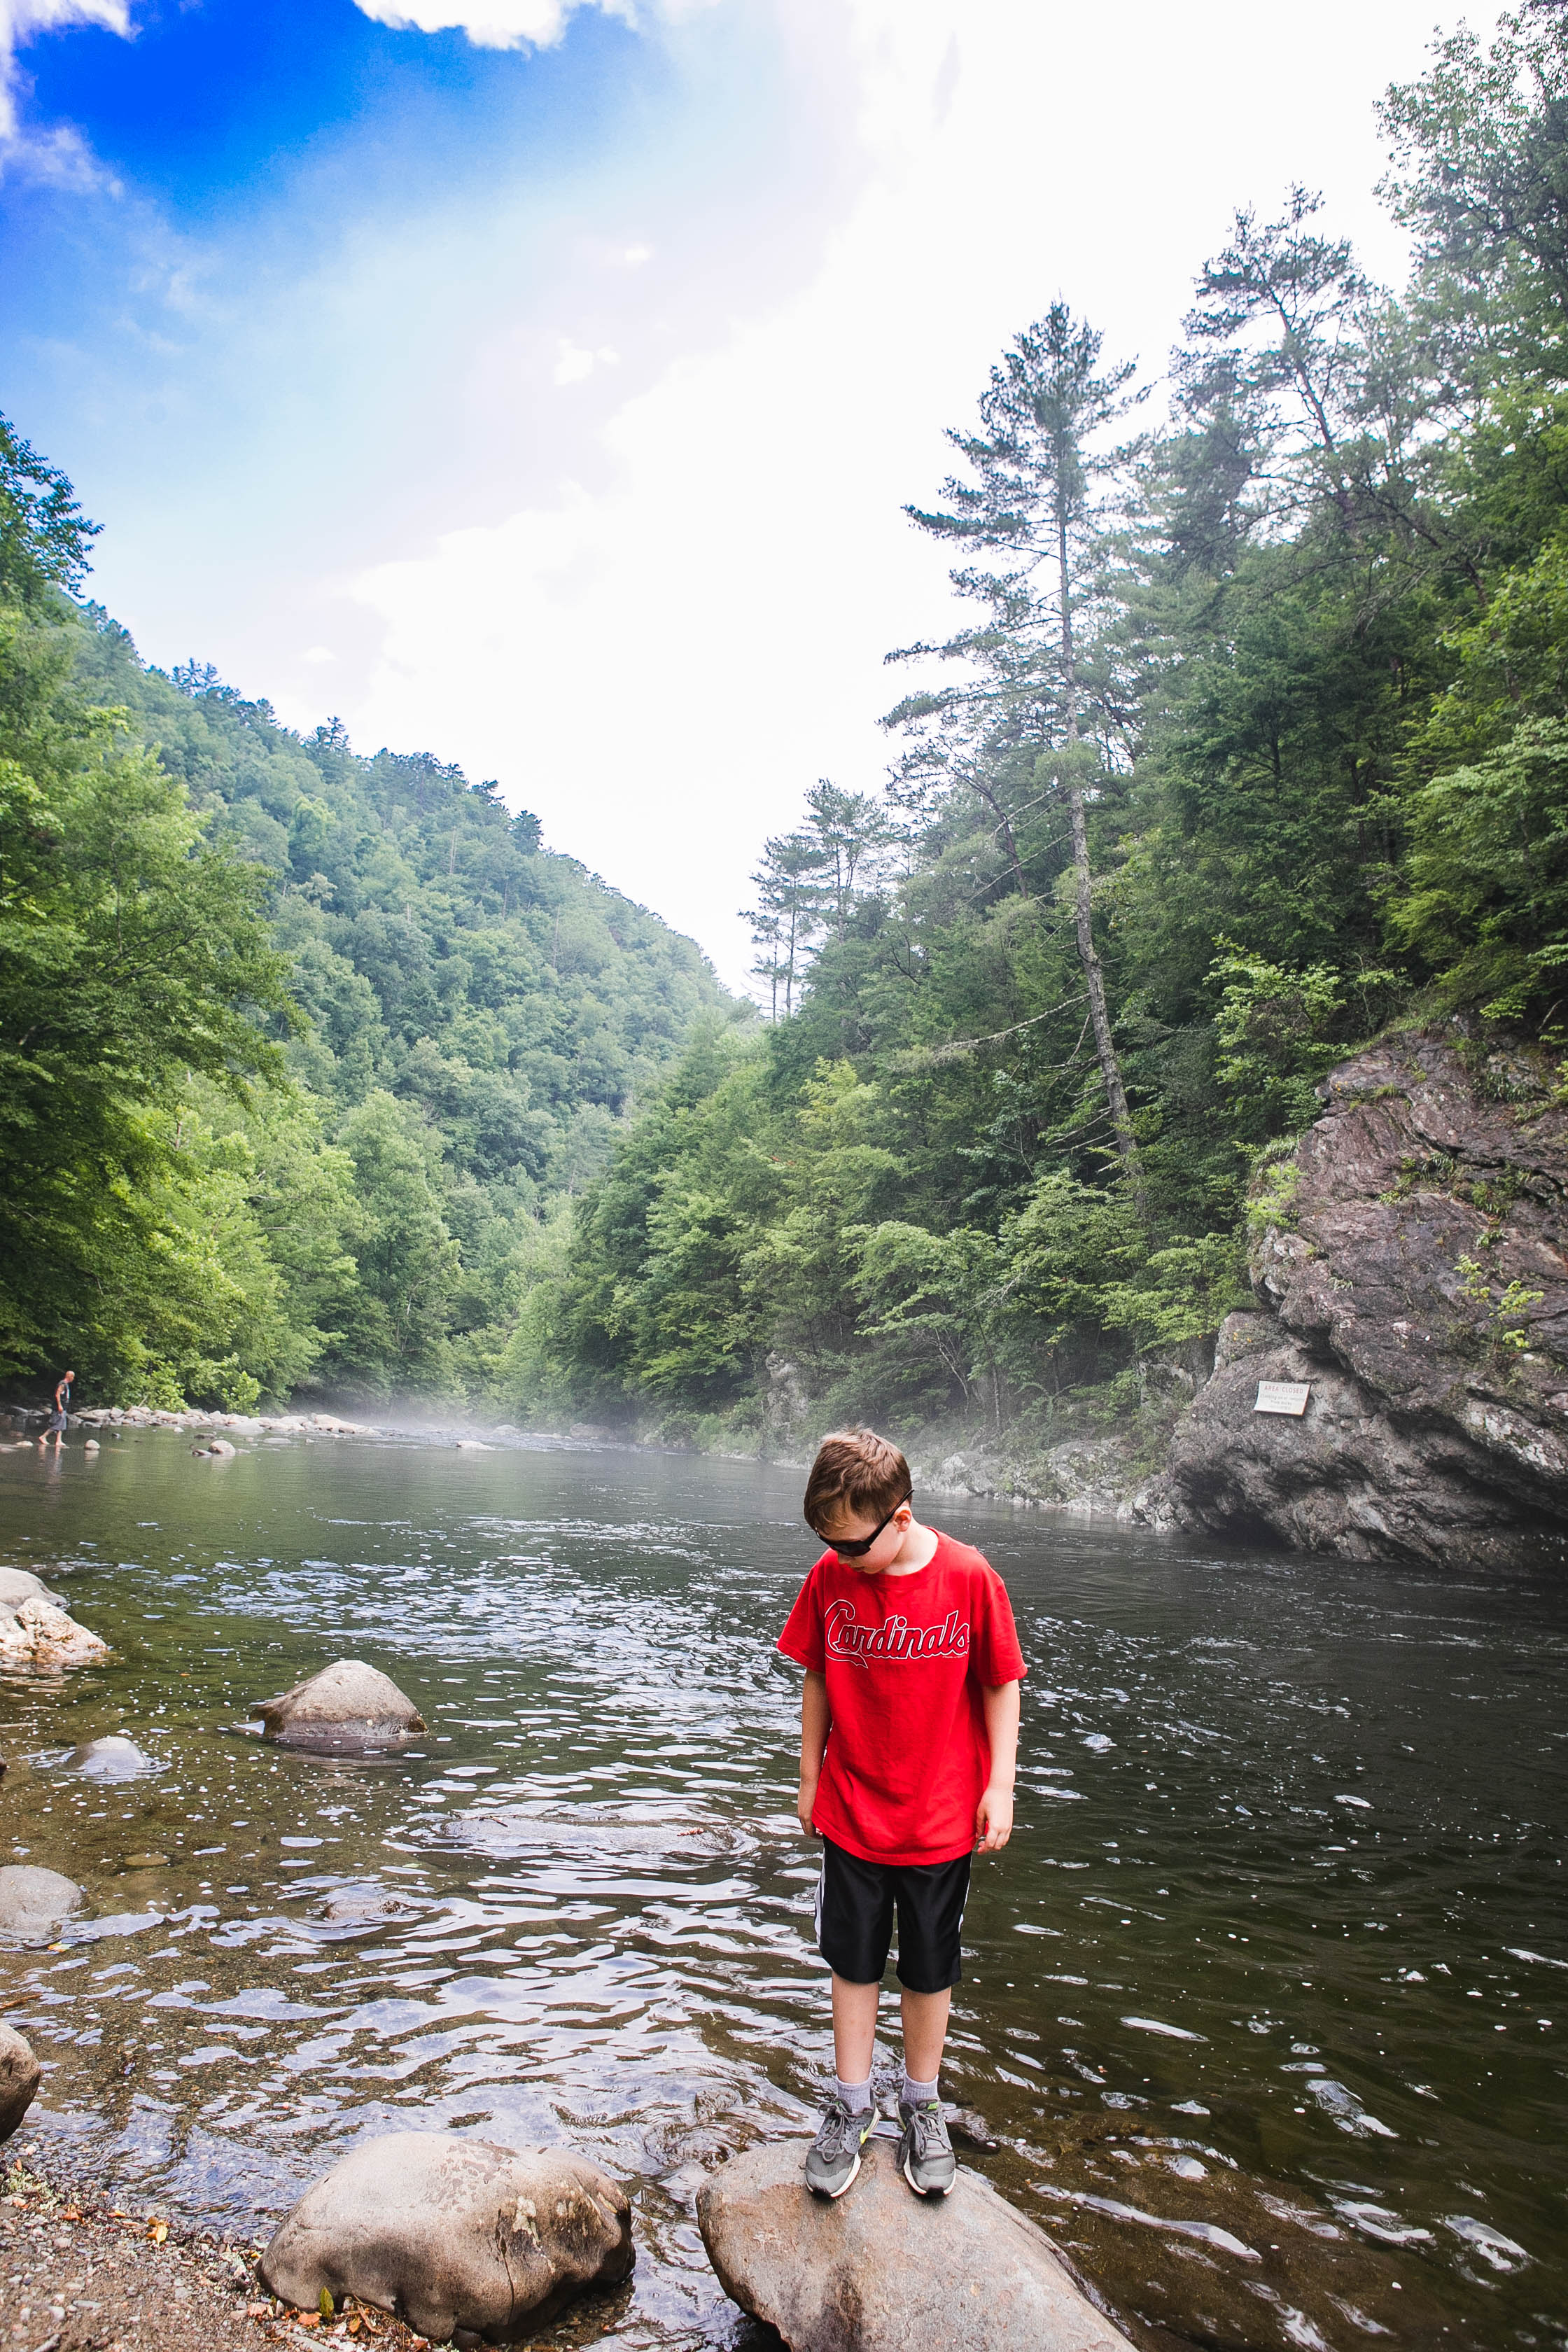 What To Do with Kids in the Smoky Mountains